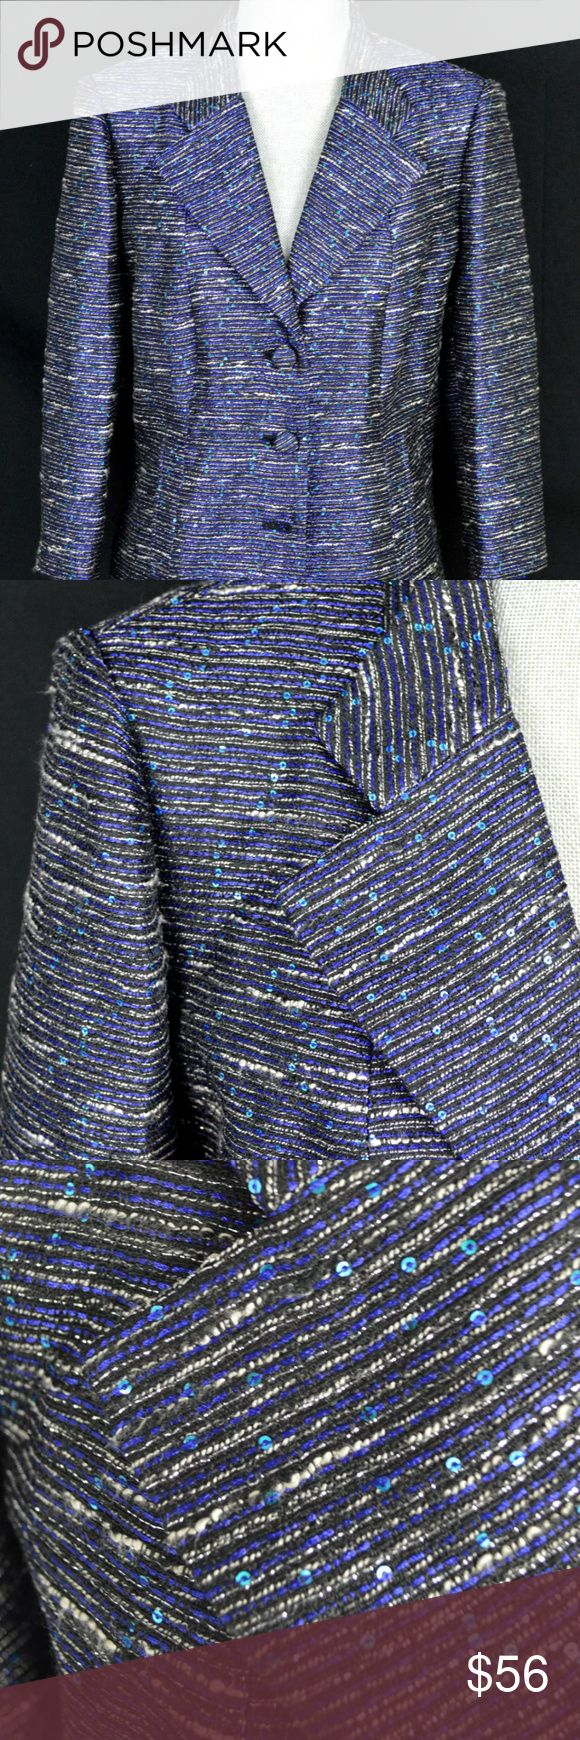 "Kay Unger 3 button jacket blazer in size 14 A new with tags Kay Unger 3 button jacket blazer in size 14. Blue, black and white stripes with blue sequins. Comes with extra button.  Dimensions:-      Length:- 22.25""     Chest:- 20.25""     Shoulder:- 16.5""     Sleeve:- 19""  Thanks for viewing! Kay Unger Jackets & Coats Blazers"